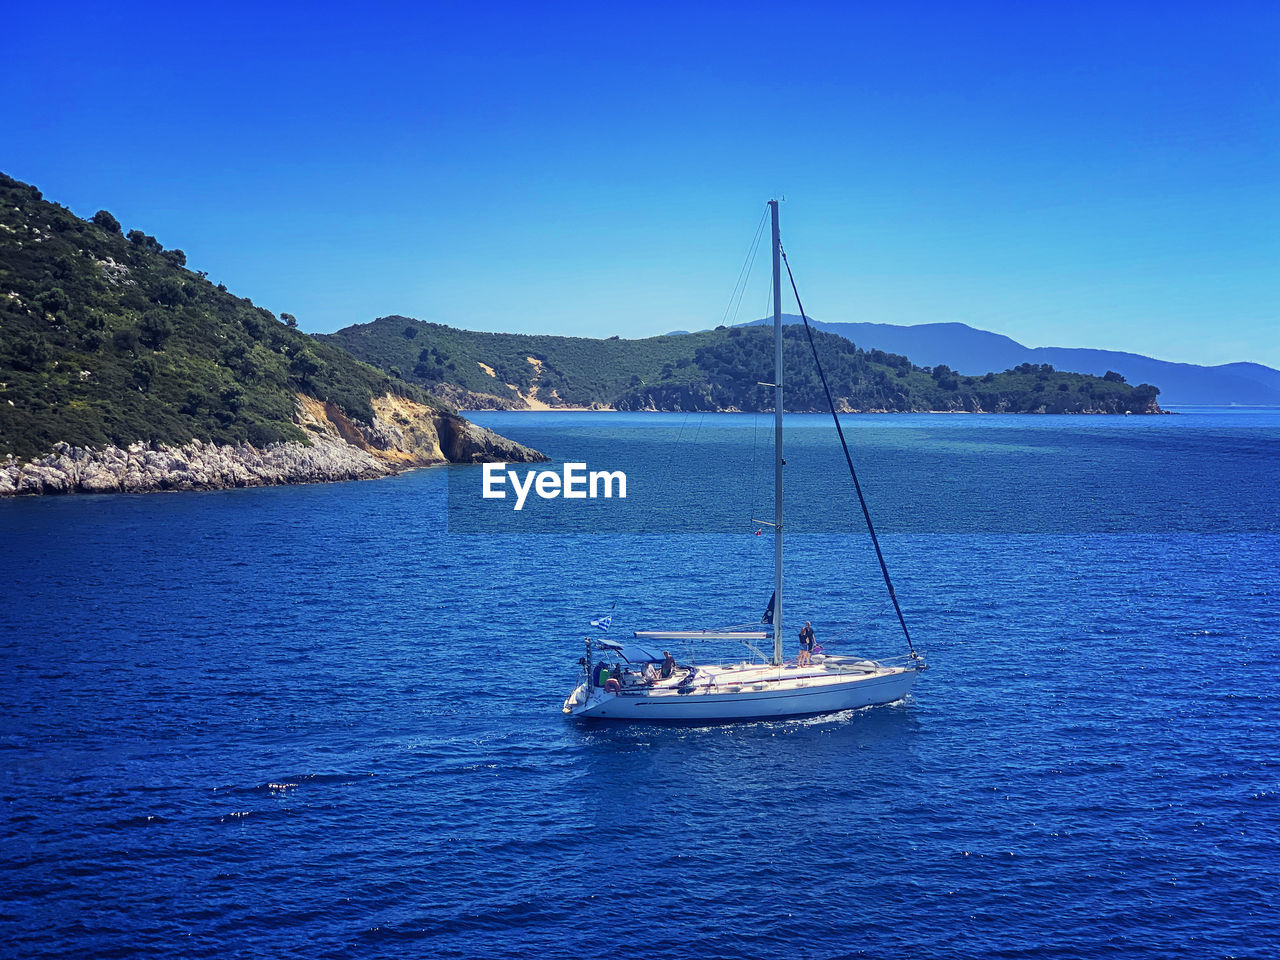 nautical vessel, water, sea, transportation, mode of transportation, sky, scenics - nature, beauty in nature, blue, sailboat, mountain, sailing, day, waterfront, tranquil scene, clear sky, nature, tranquility, no people, outdoors, yacht, yachting, luxury